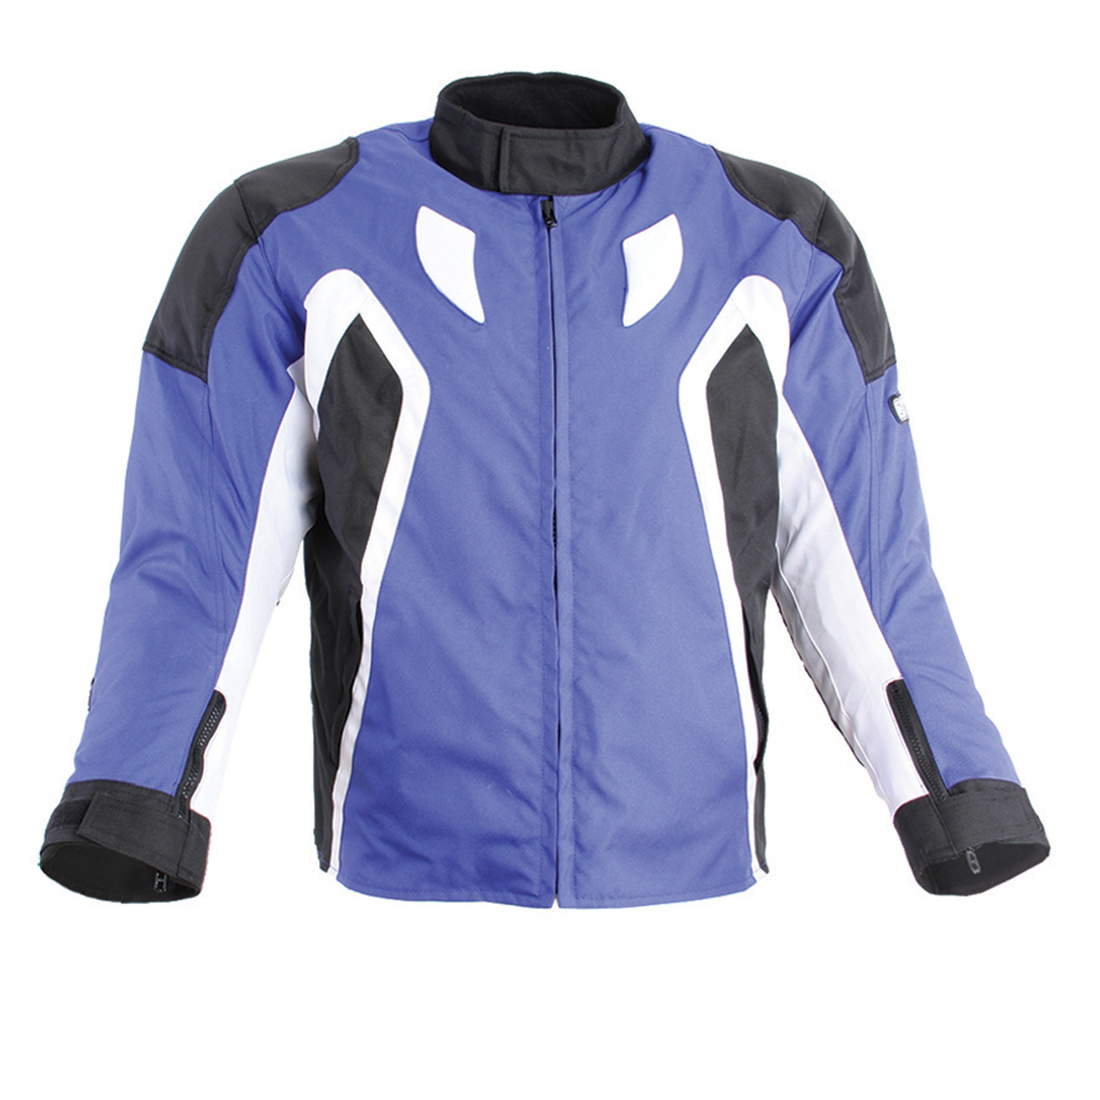 Bunda cross/enduro Blue